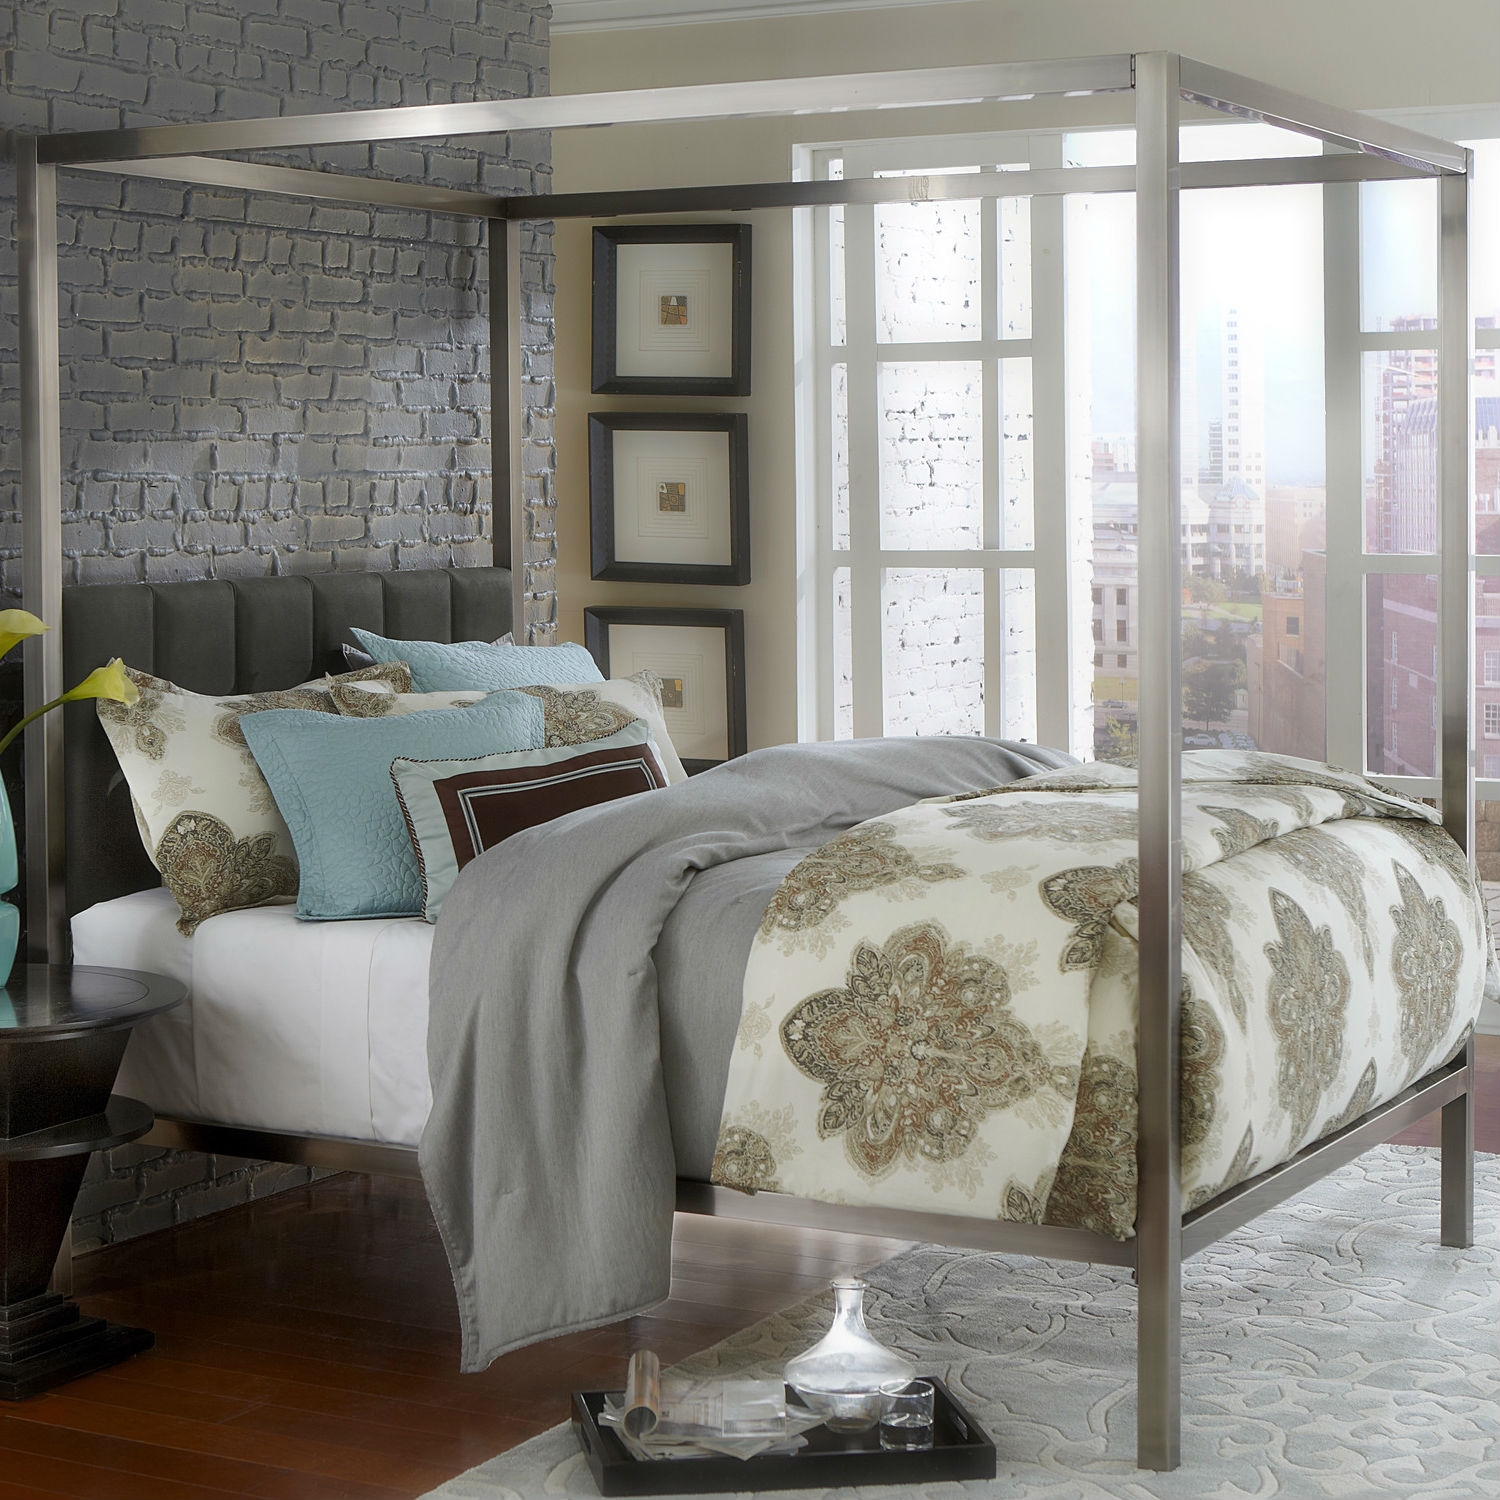 - King Size Modern Metal Canopy Bed With Upholstered Headboard